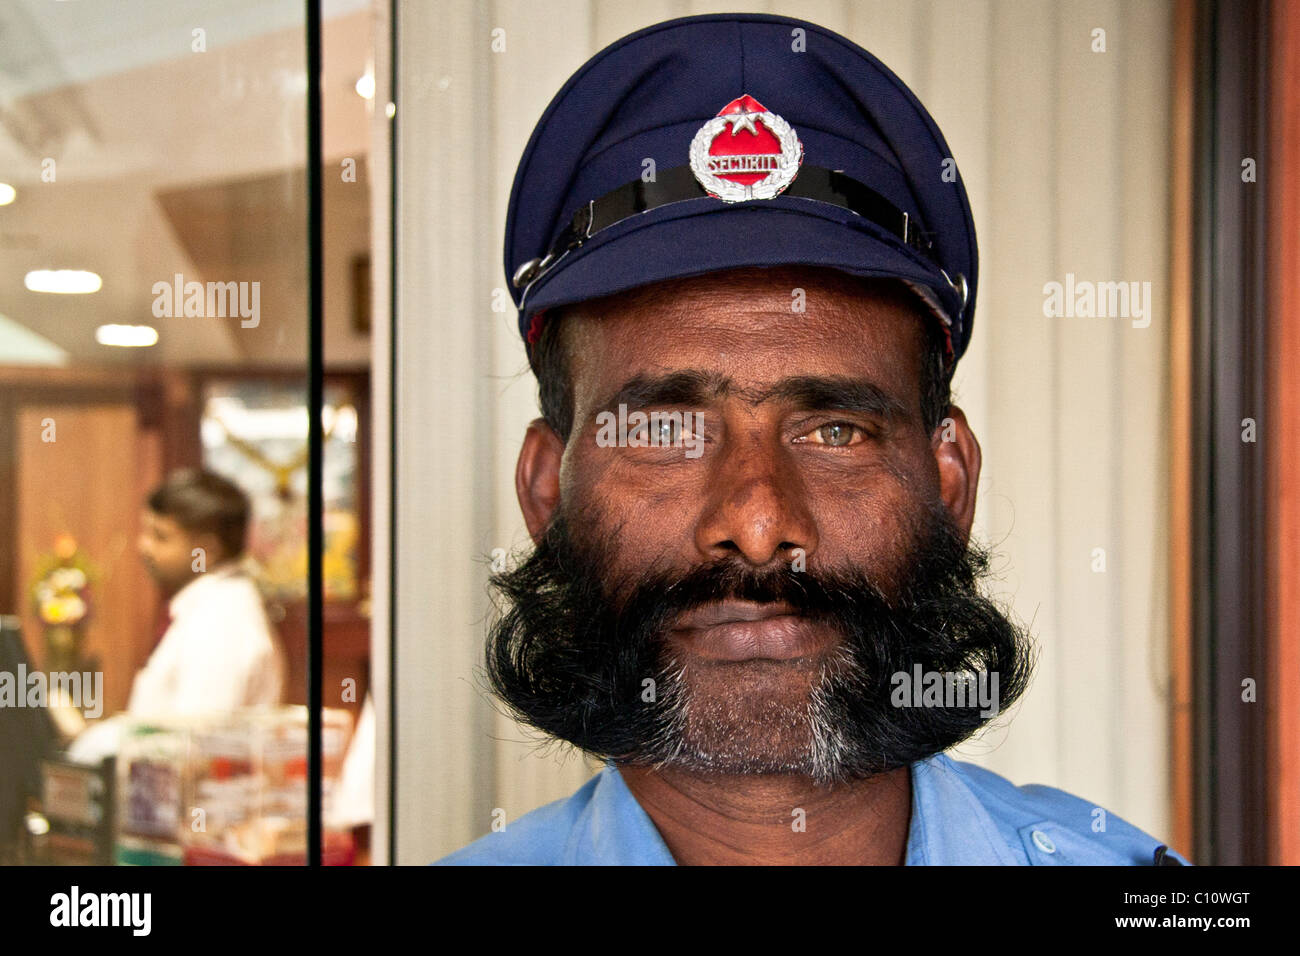 Bellboy with big mustache, bear and hat at the hotel door. - Stock Image